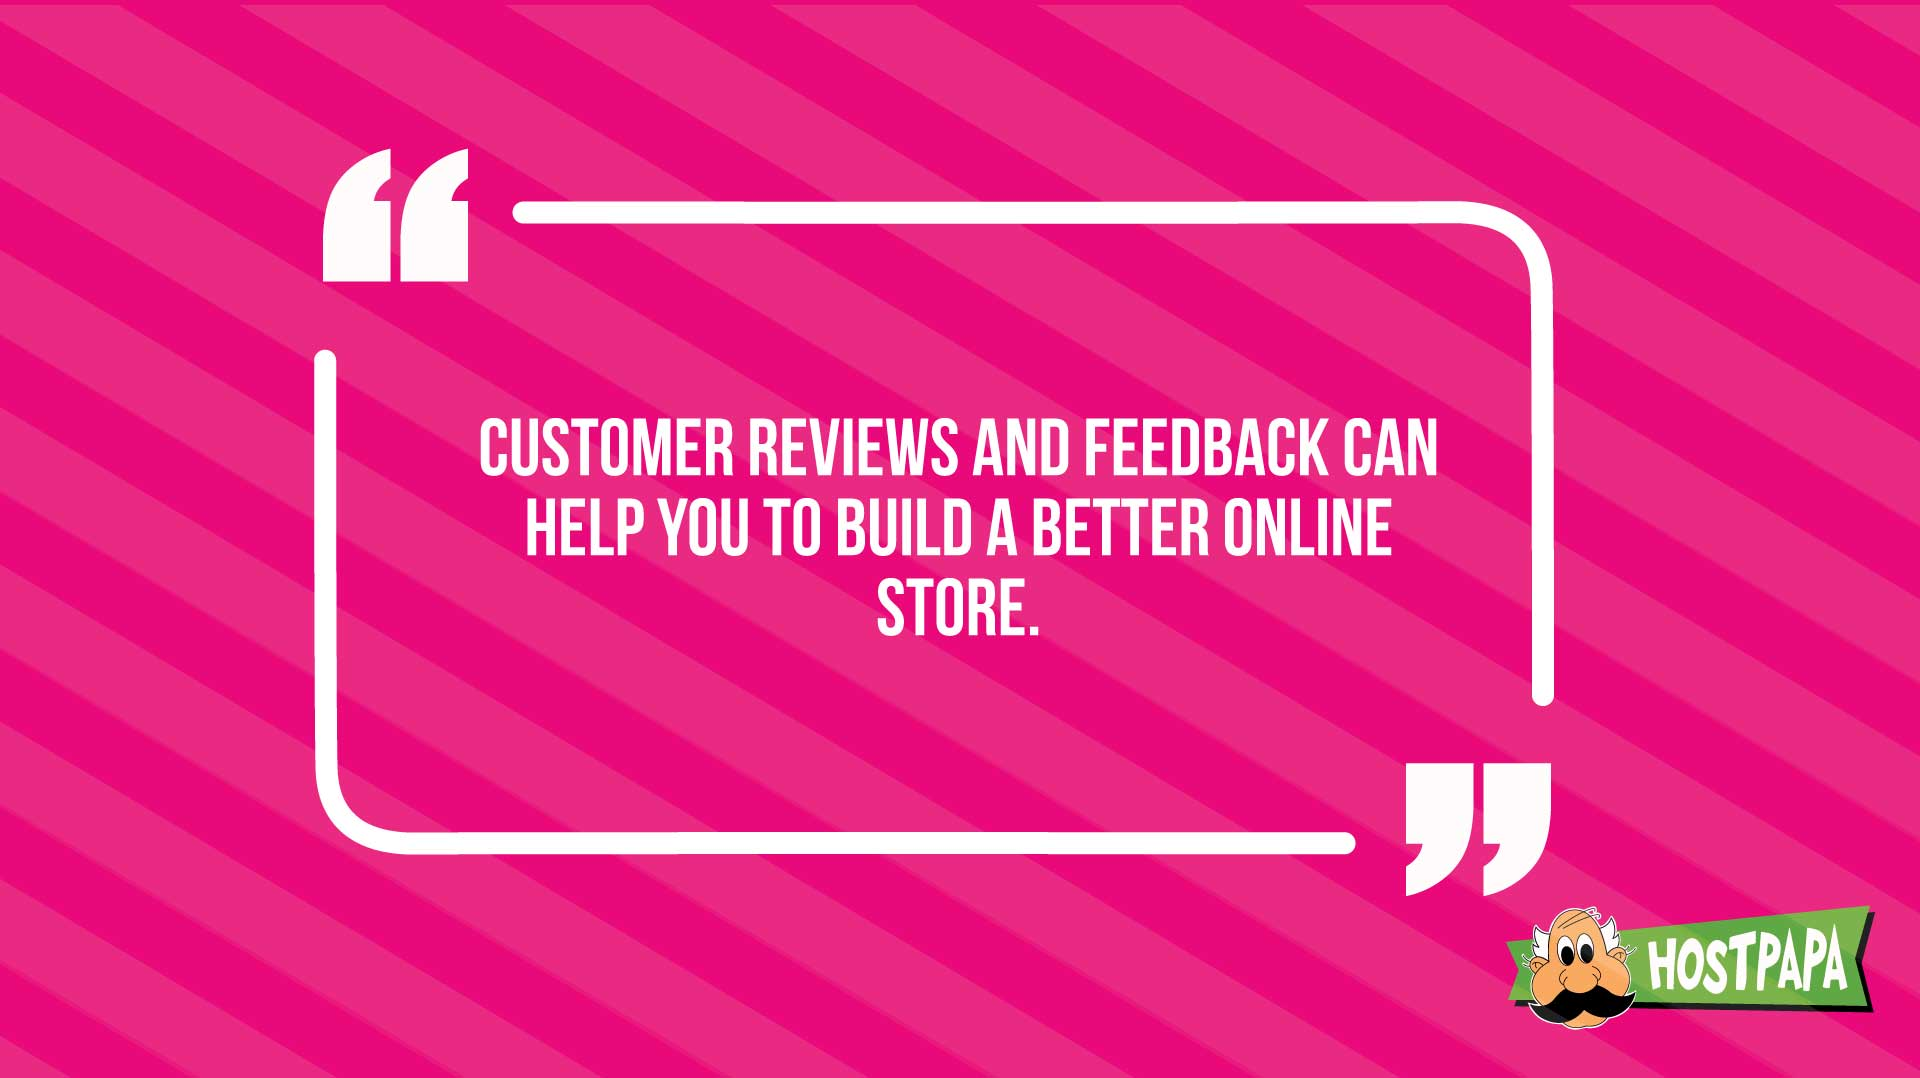 Customer reviews can help you to build a better online store